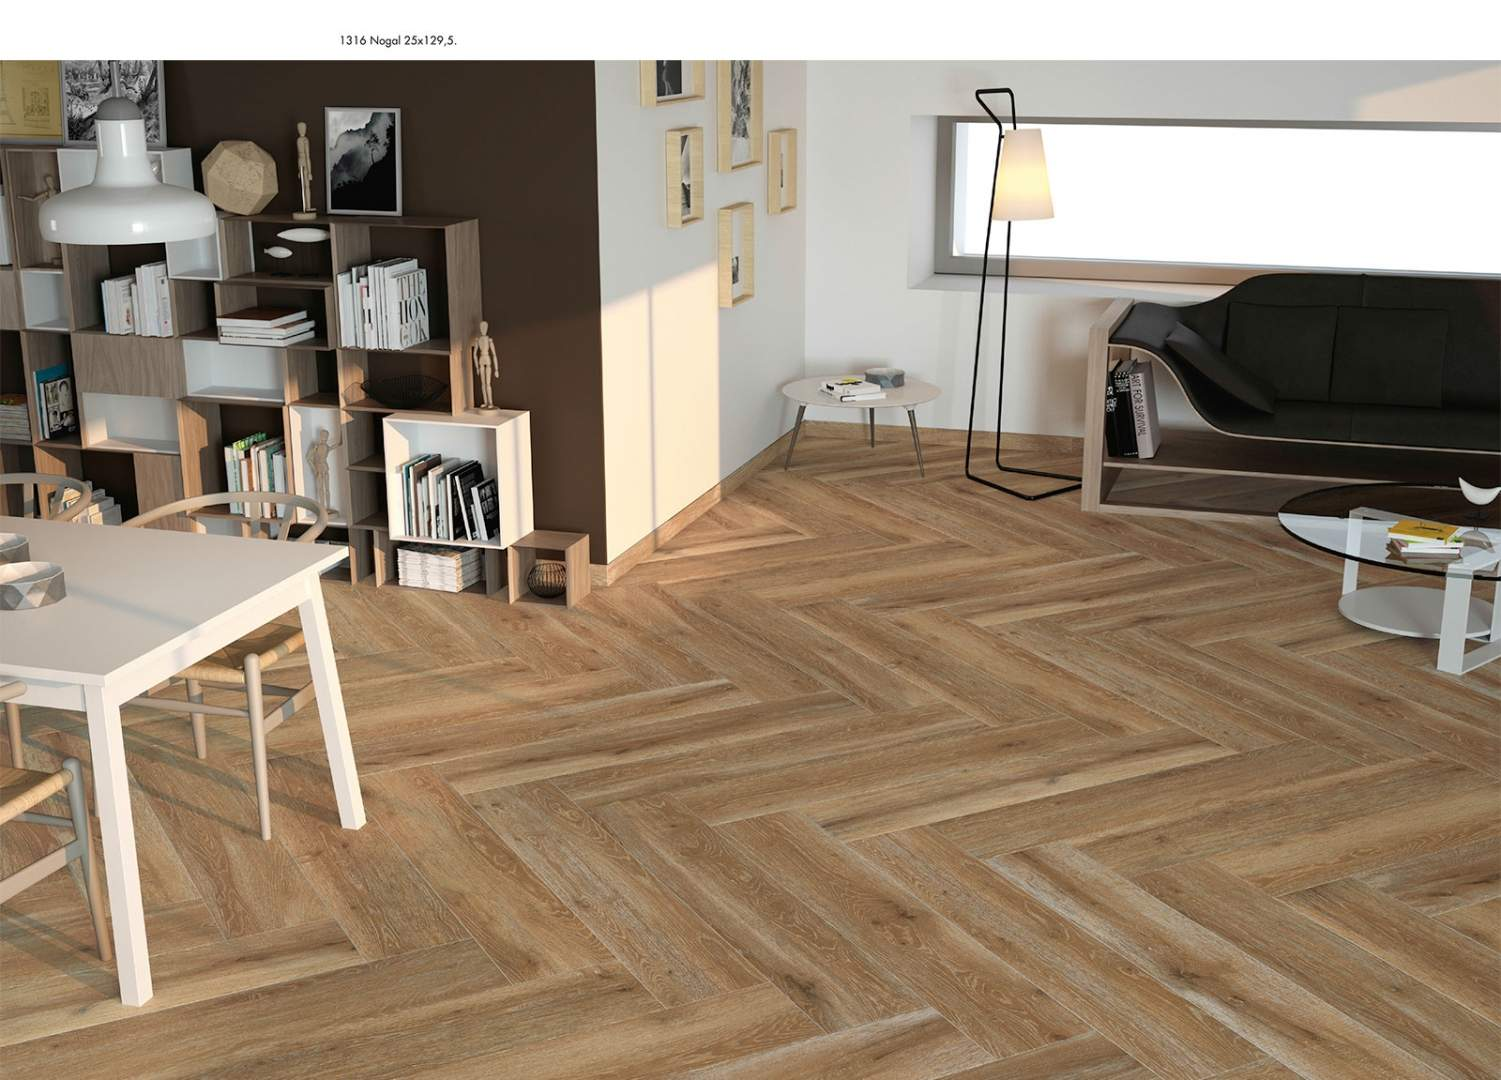 Fantastic range of wood effect tiles italian tile limed oak flooring that wont scratch or stain dailygadgetfo Choice Image